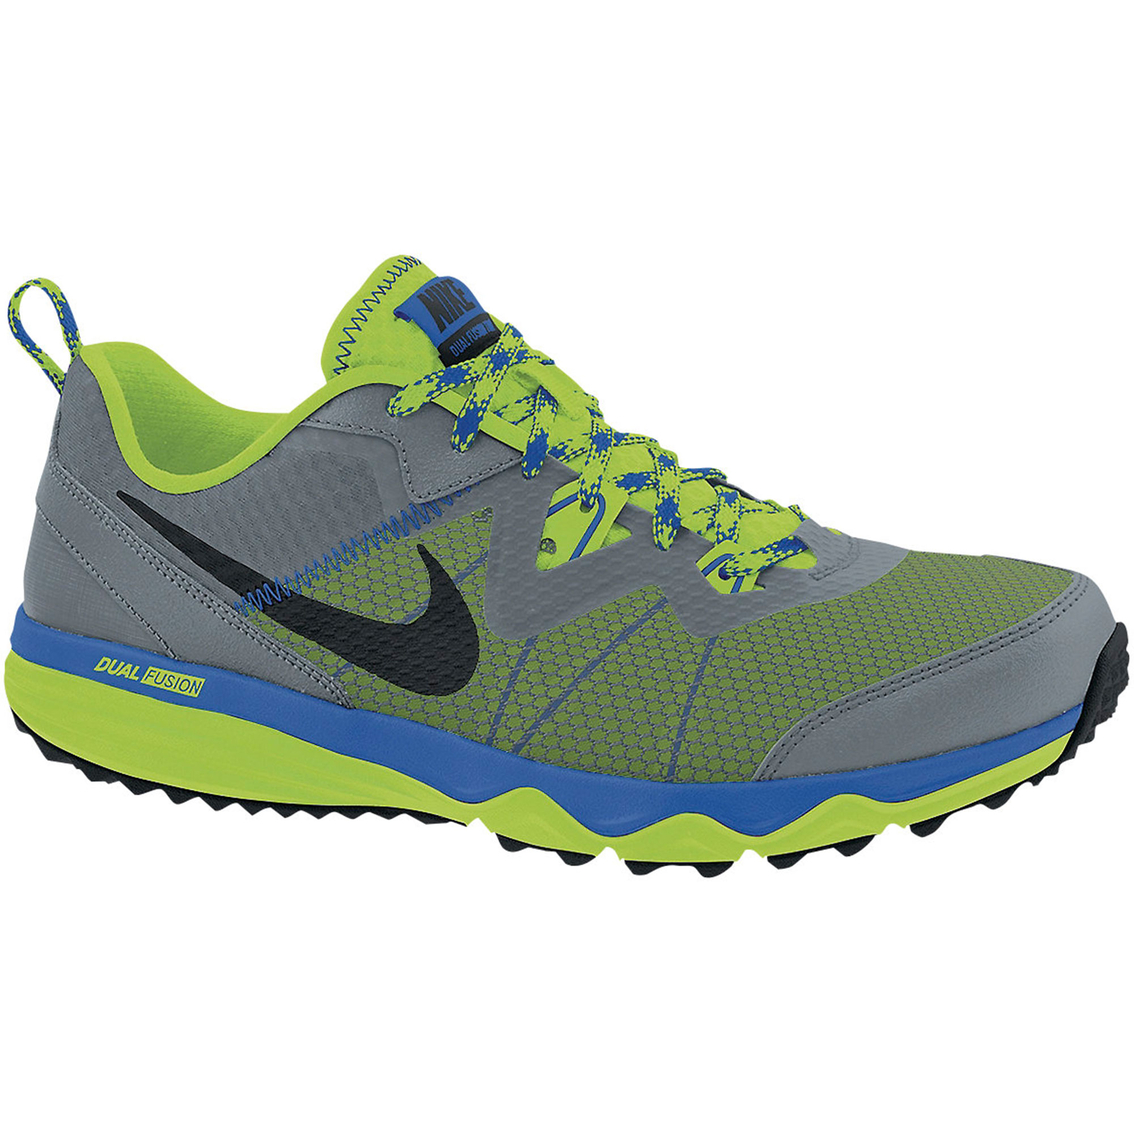 79ceb21a5974 Nike Dual Fusion Mens Shoes - discount nike shoes